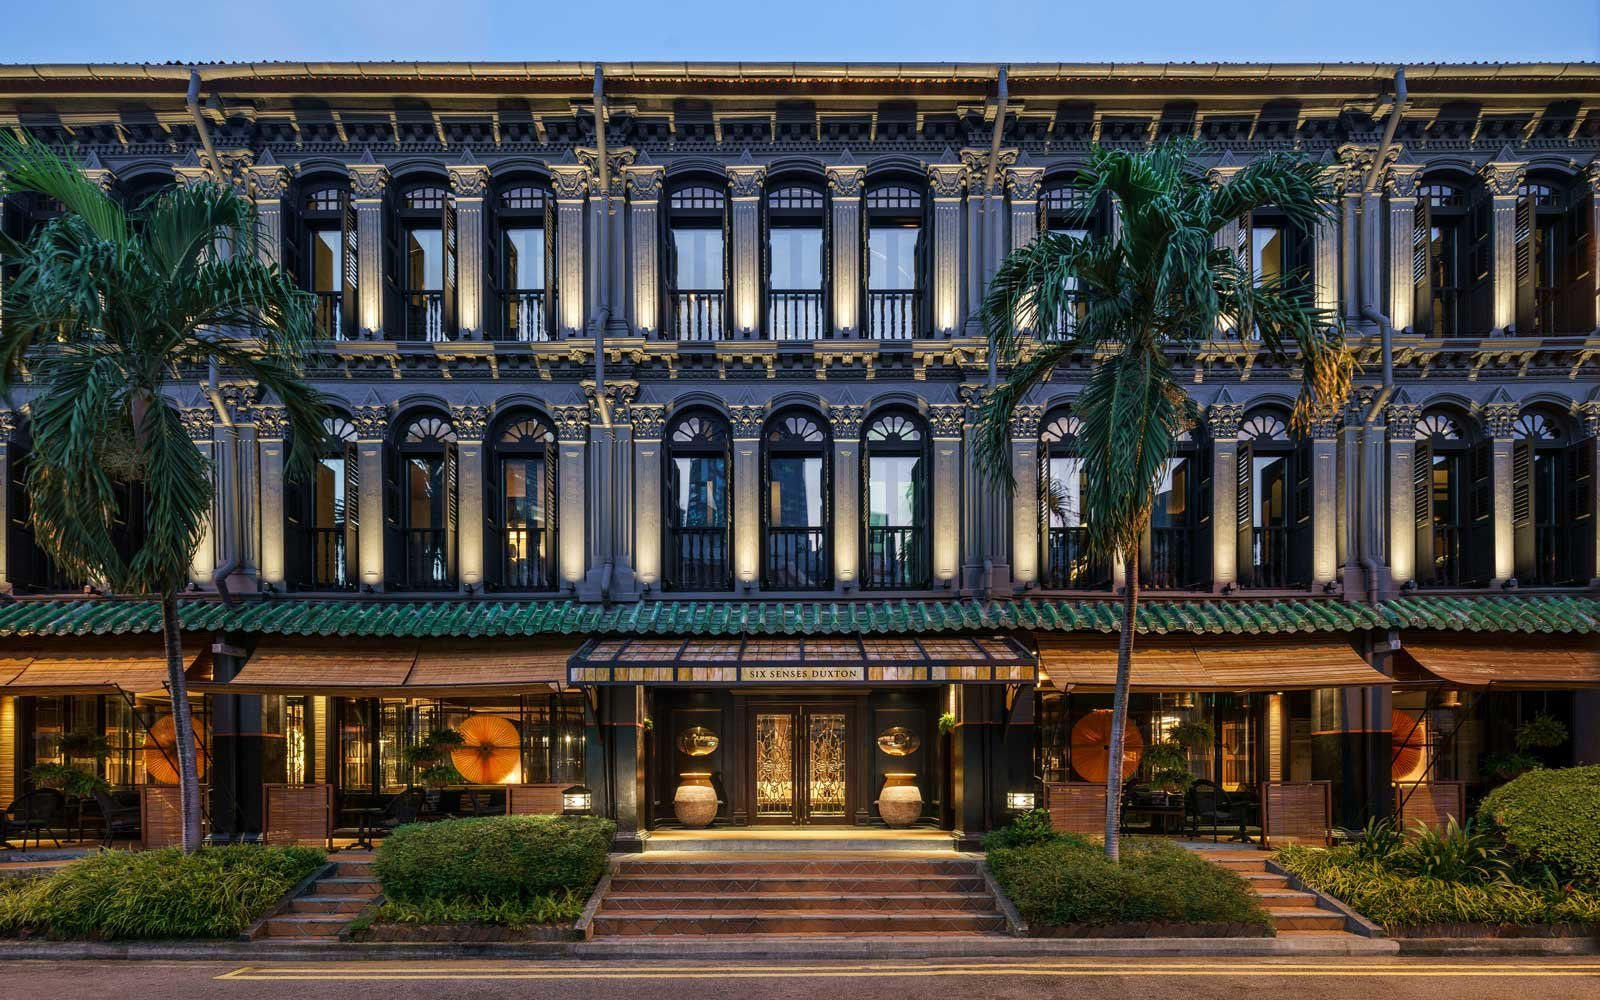 Exterior of the Six Senses Duxton hotel in Singapore